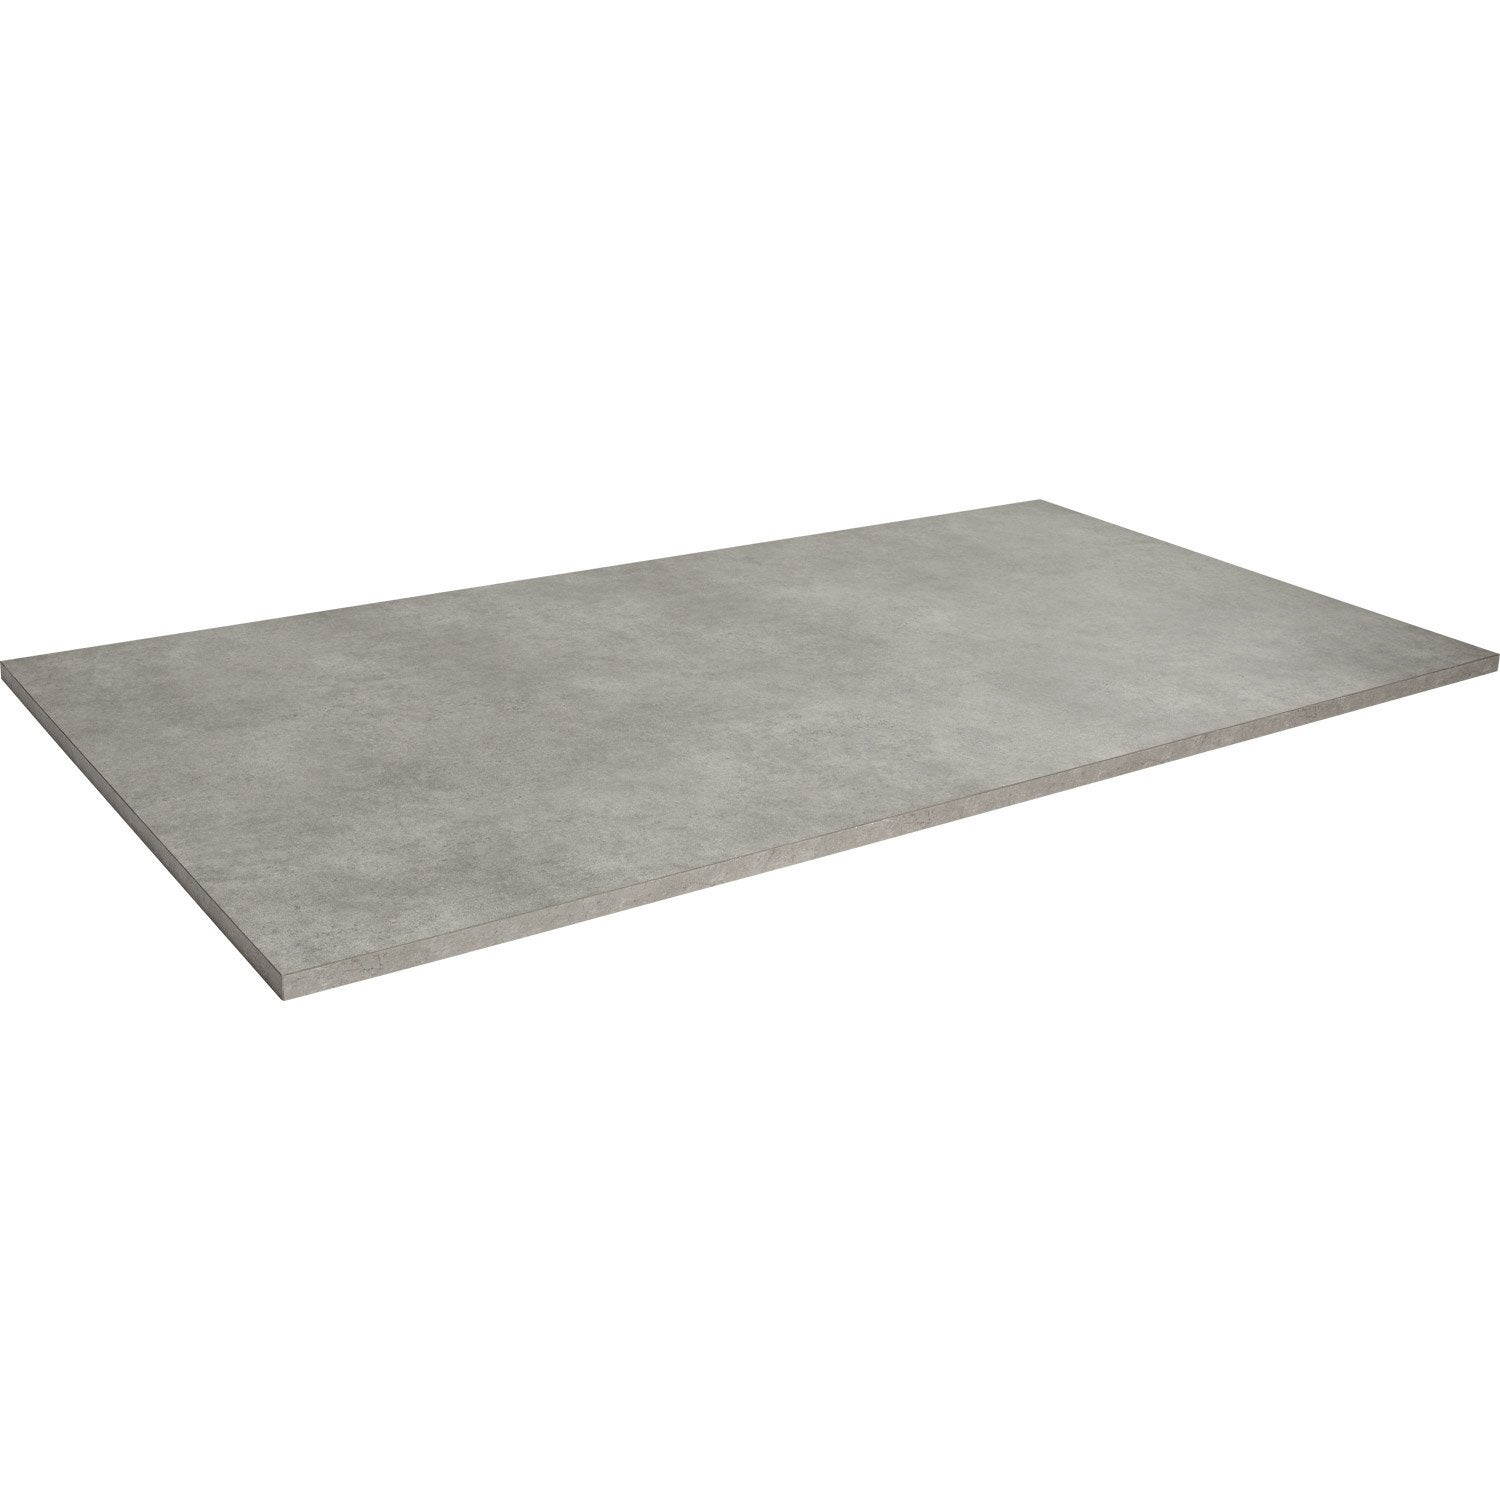 Plateau de table agglom r b ton x cm x mm leroy merlin - Plateau de table en granit ...